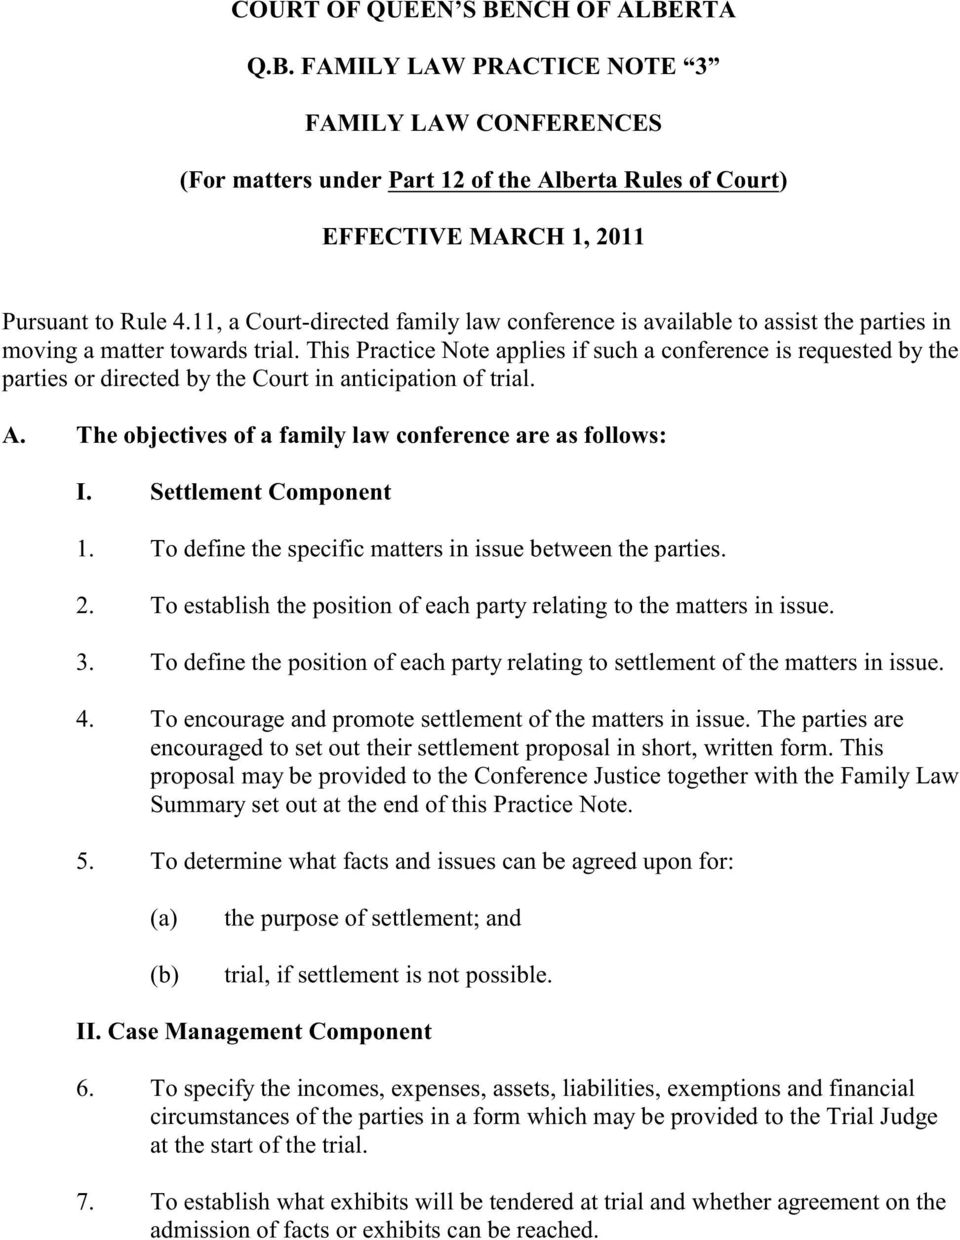 This Practice Note applies if such a conference is requested by the parties or directed by the Court in anticipation of trial. A. The objectives of a family law conference are as follows: I.